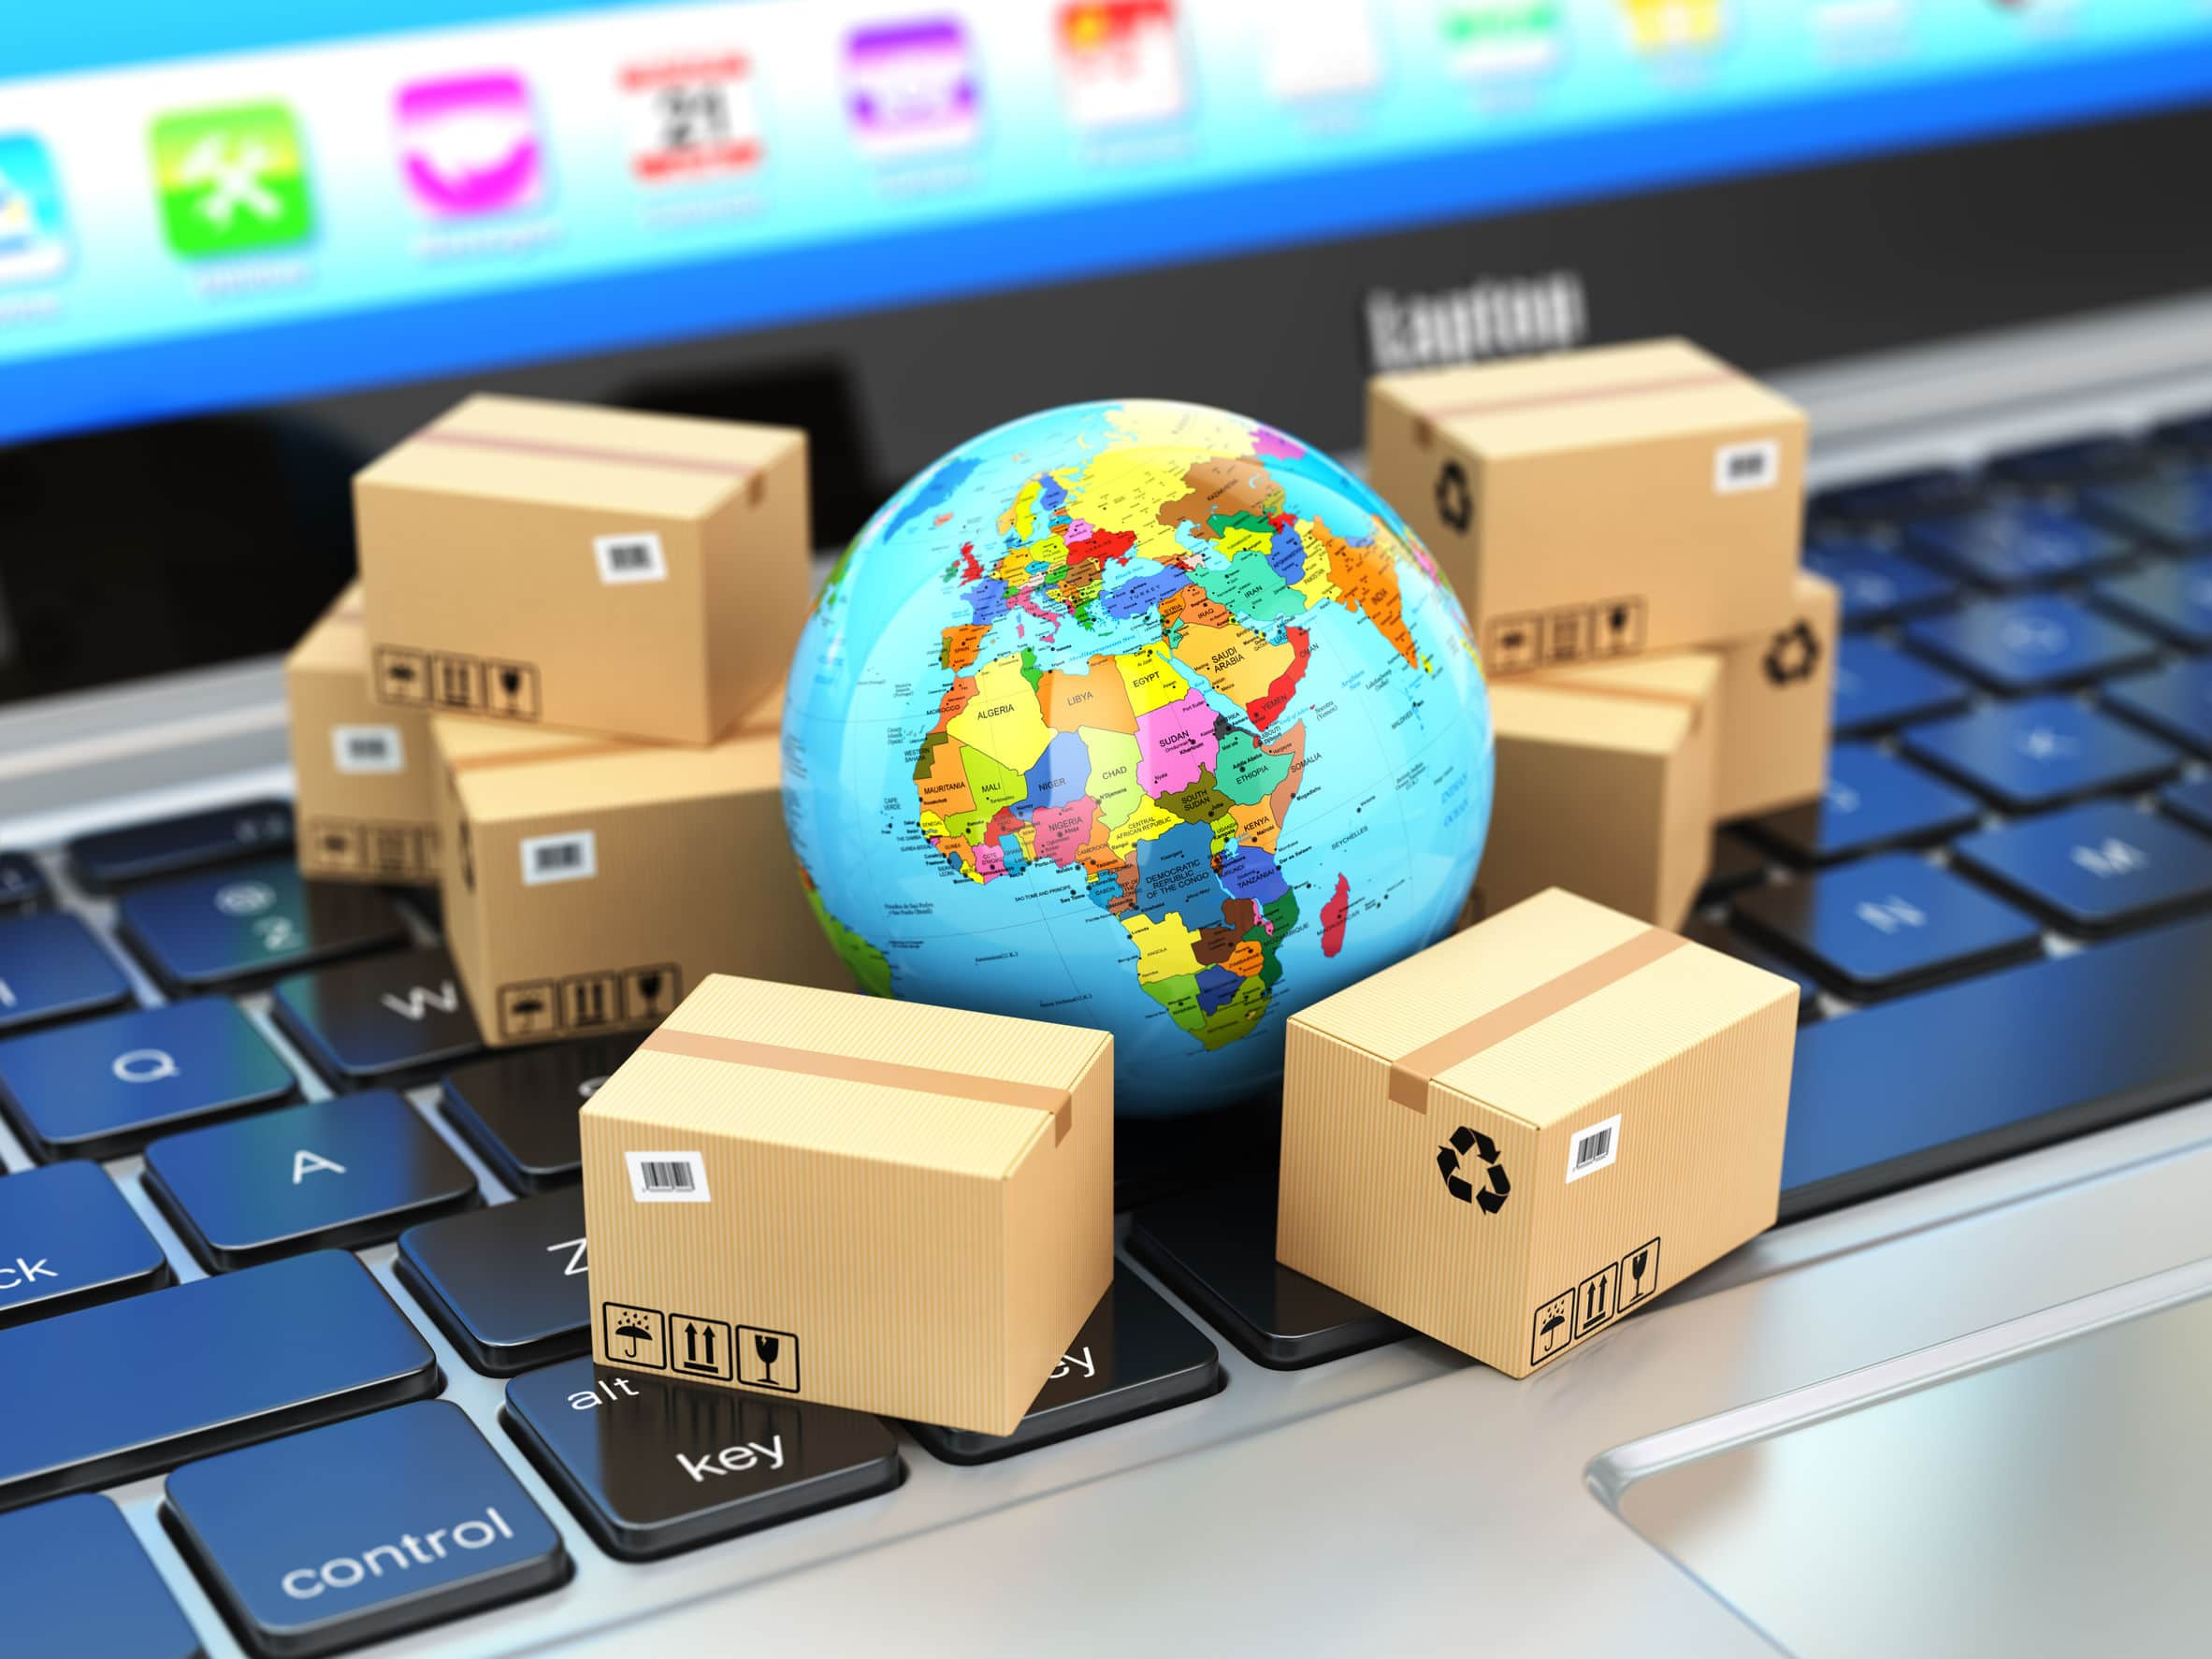 businesses trading globally represented by small boxes around a miniature globe on top of a keyboard